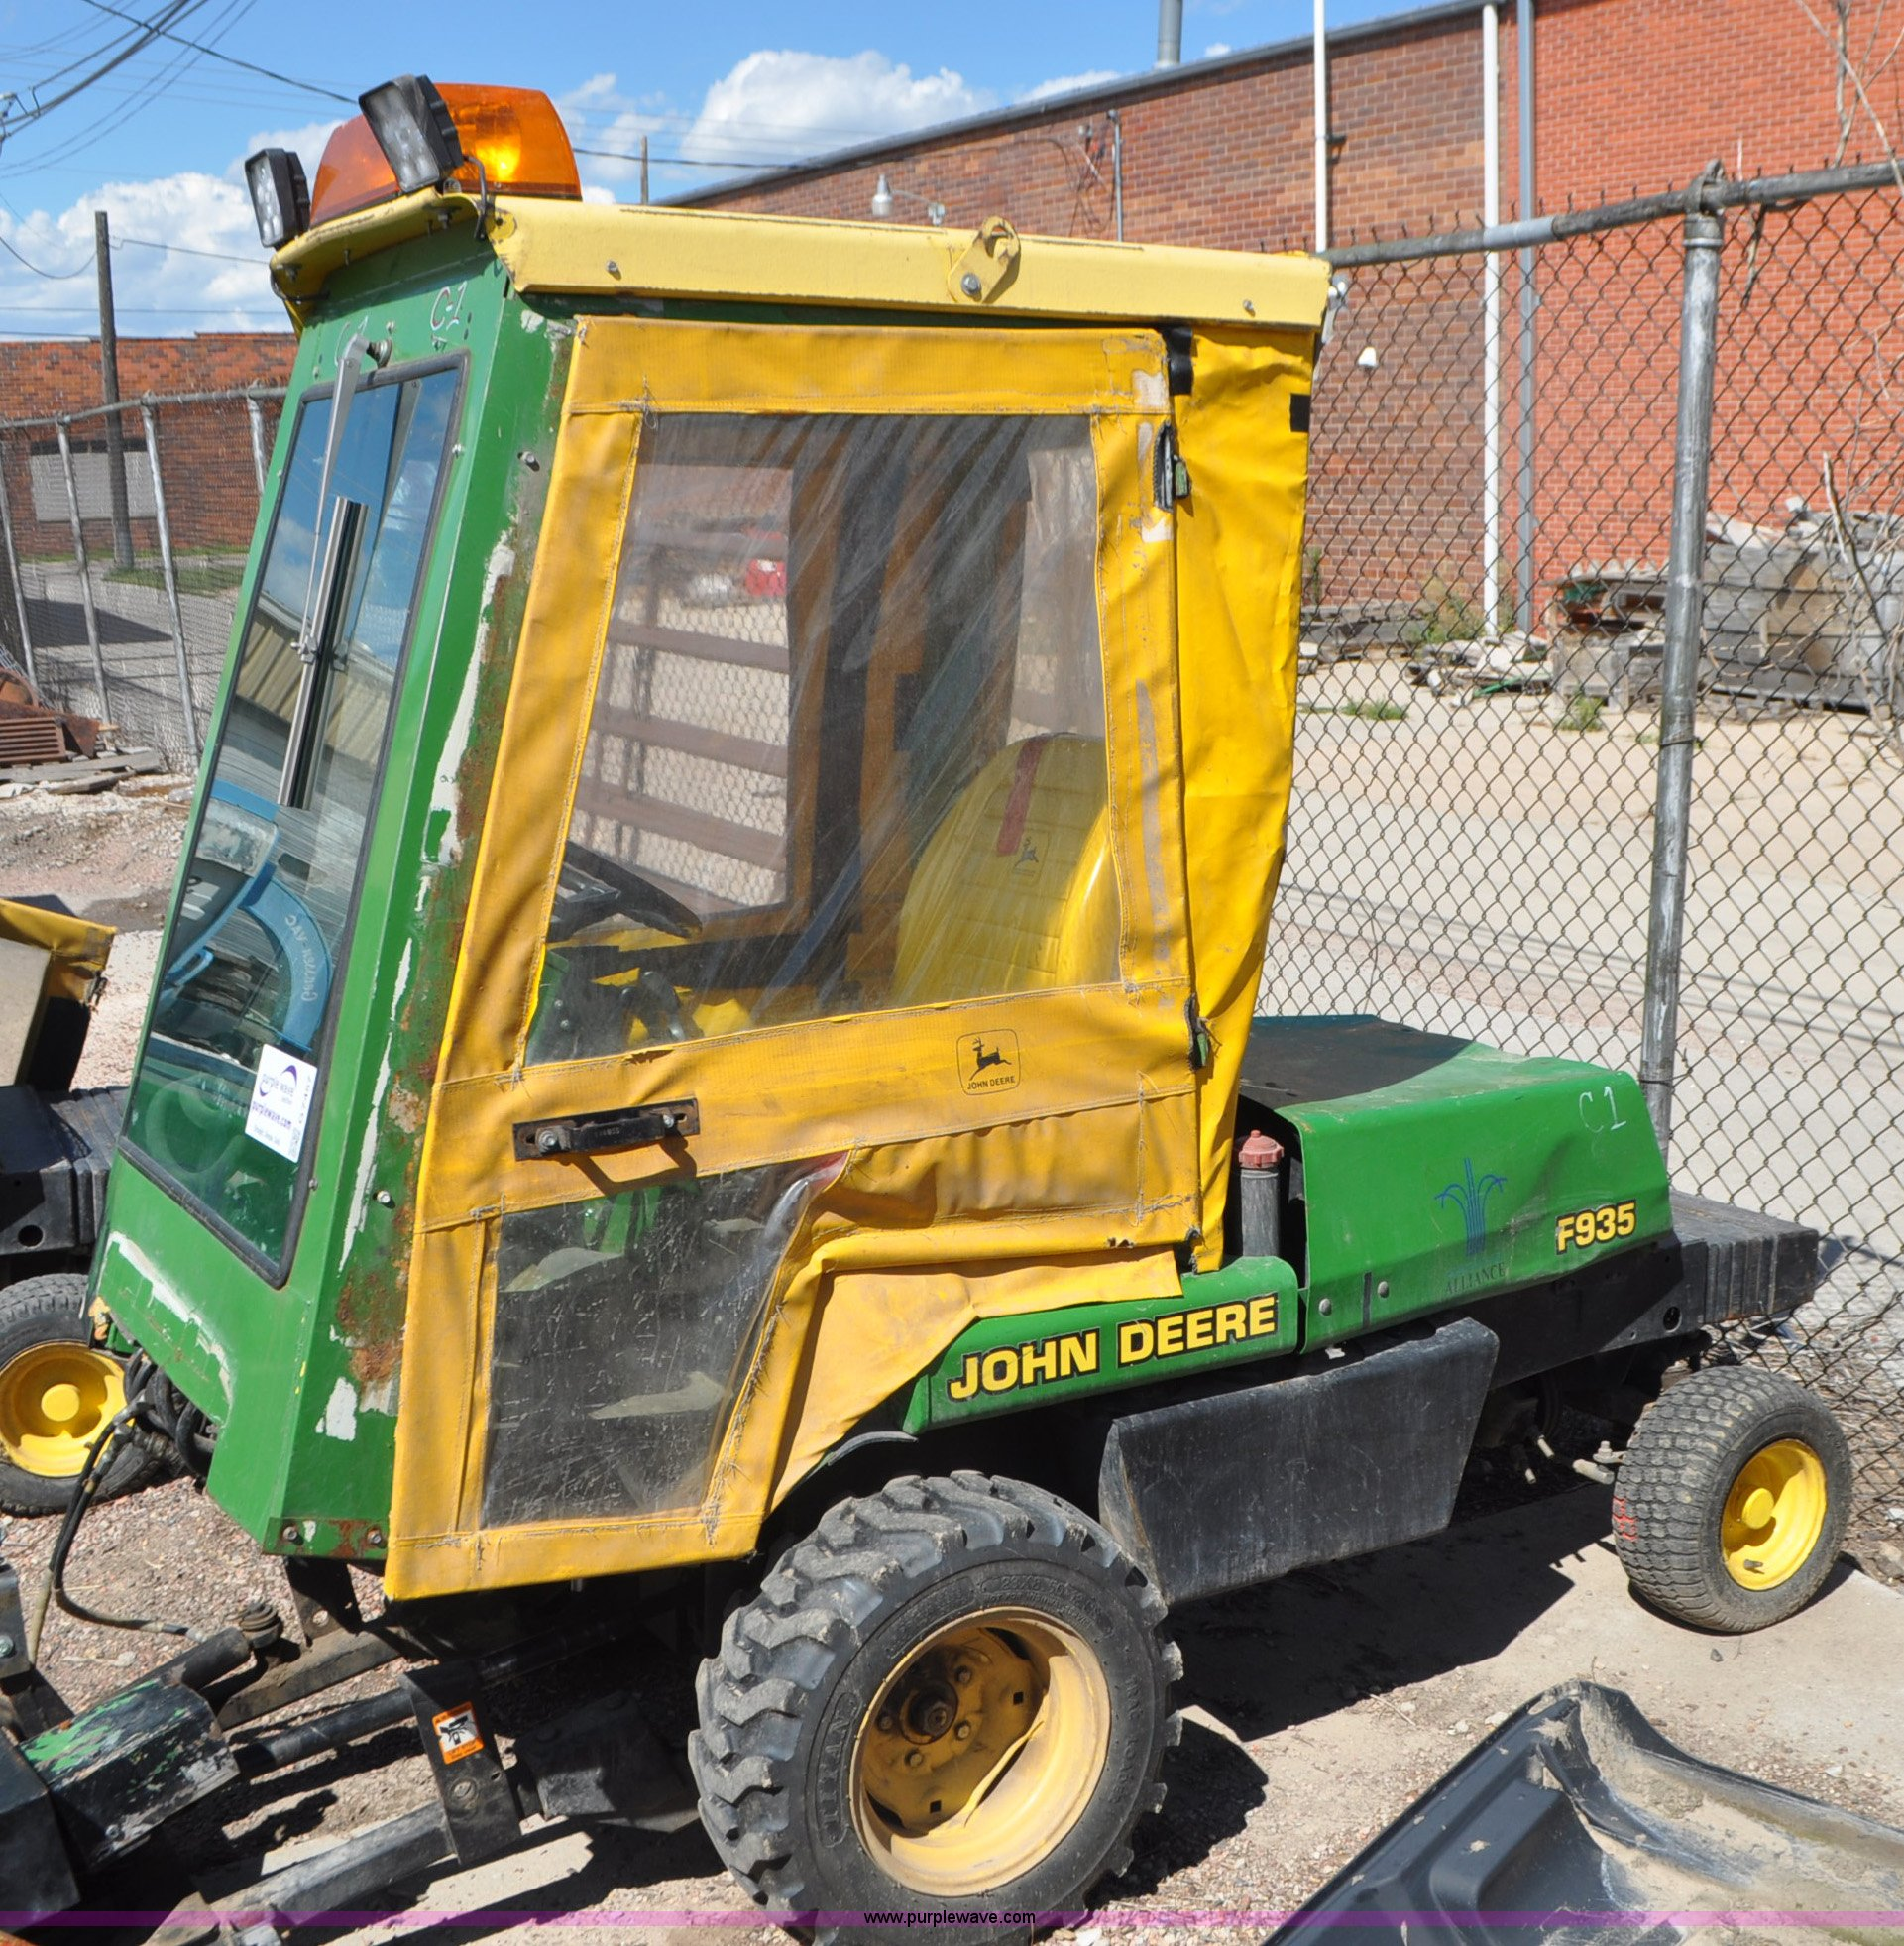 John Deere F935 lawn mower | Item G7457 | SOLD! September 13